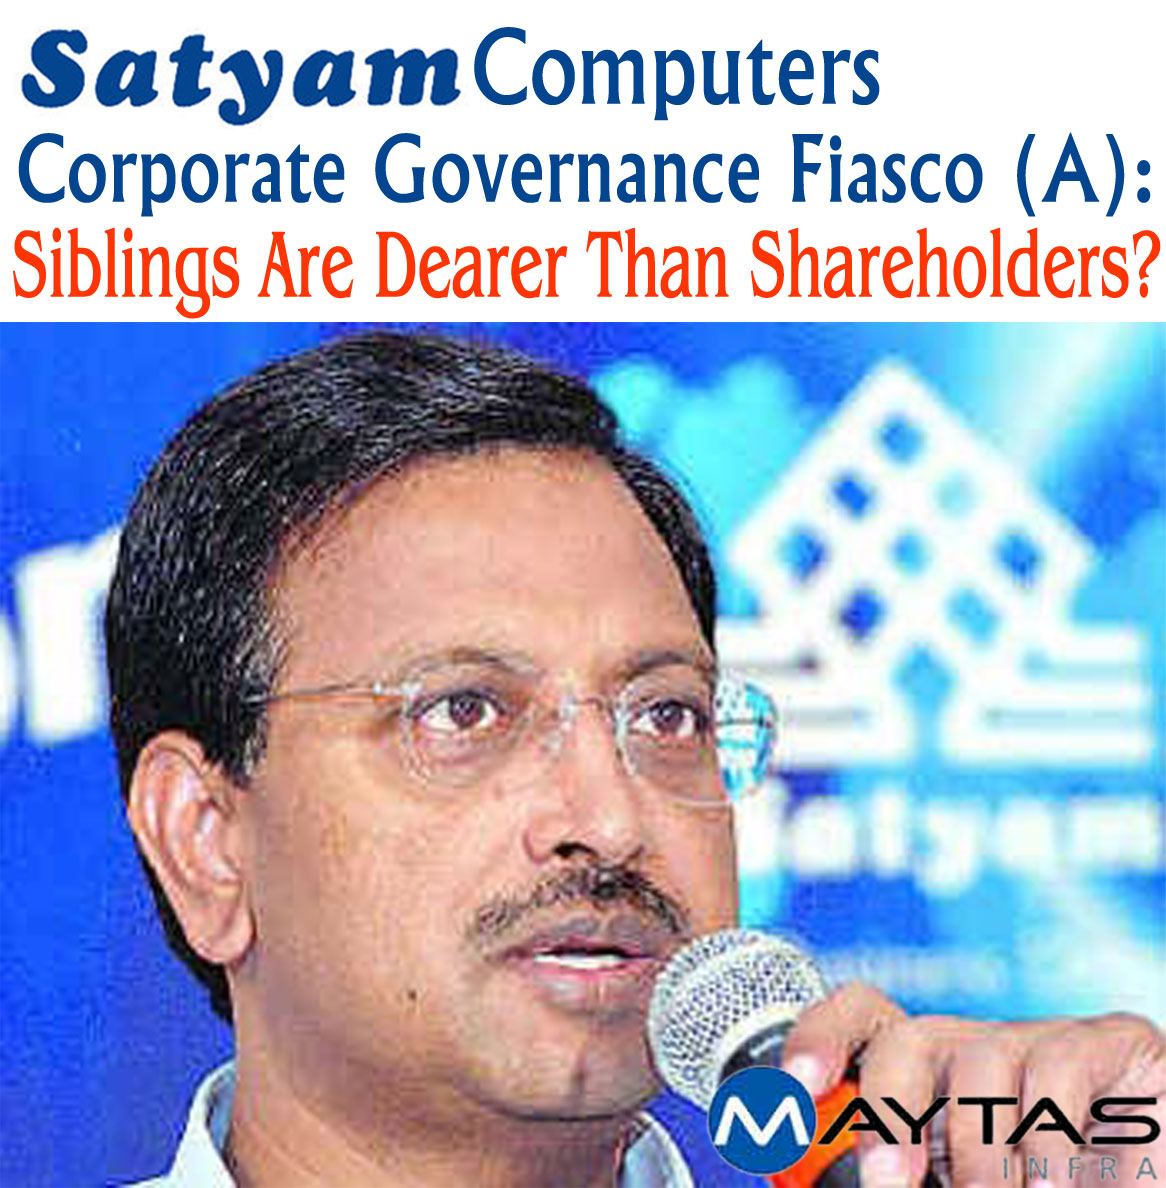 Satyam Computers Corporate Governance Fiasco (A): Siblings Are Dearer Than Shareholders? | Corporate Governance Case Study